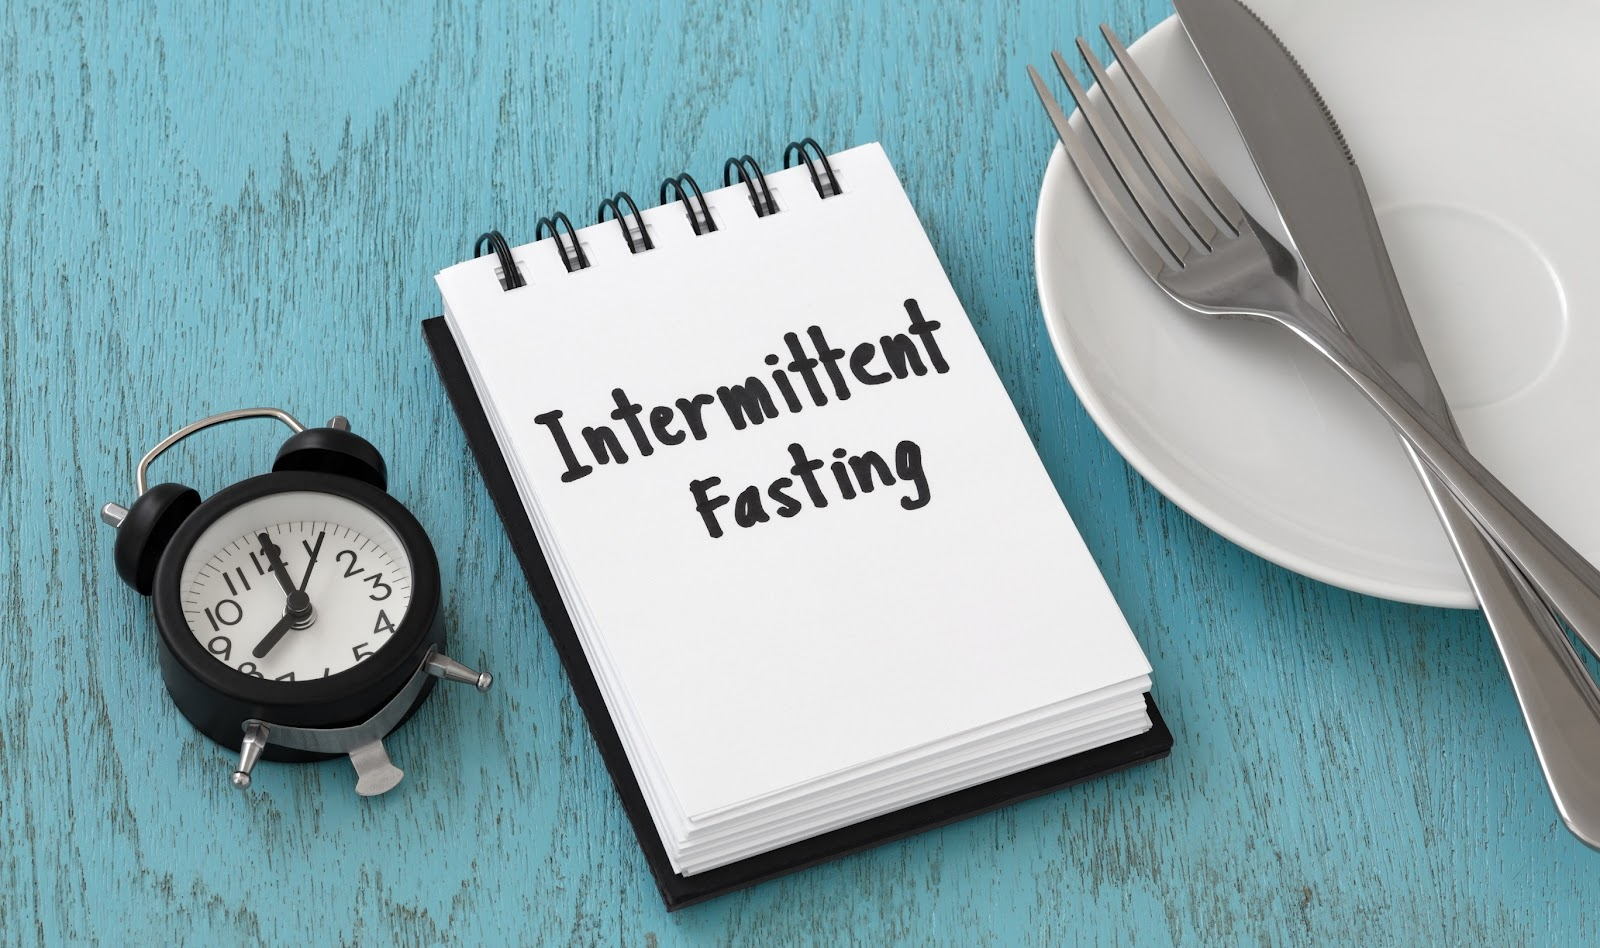 Attempt fasting for lowering the gut burden